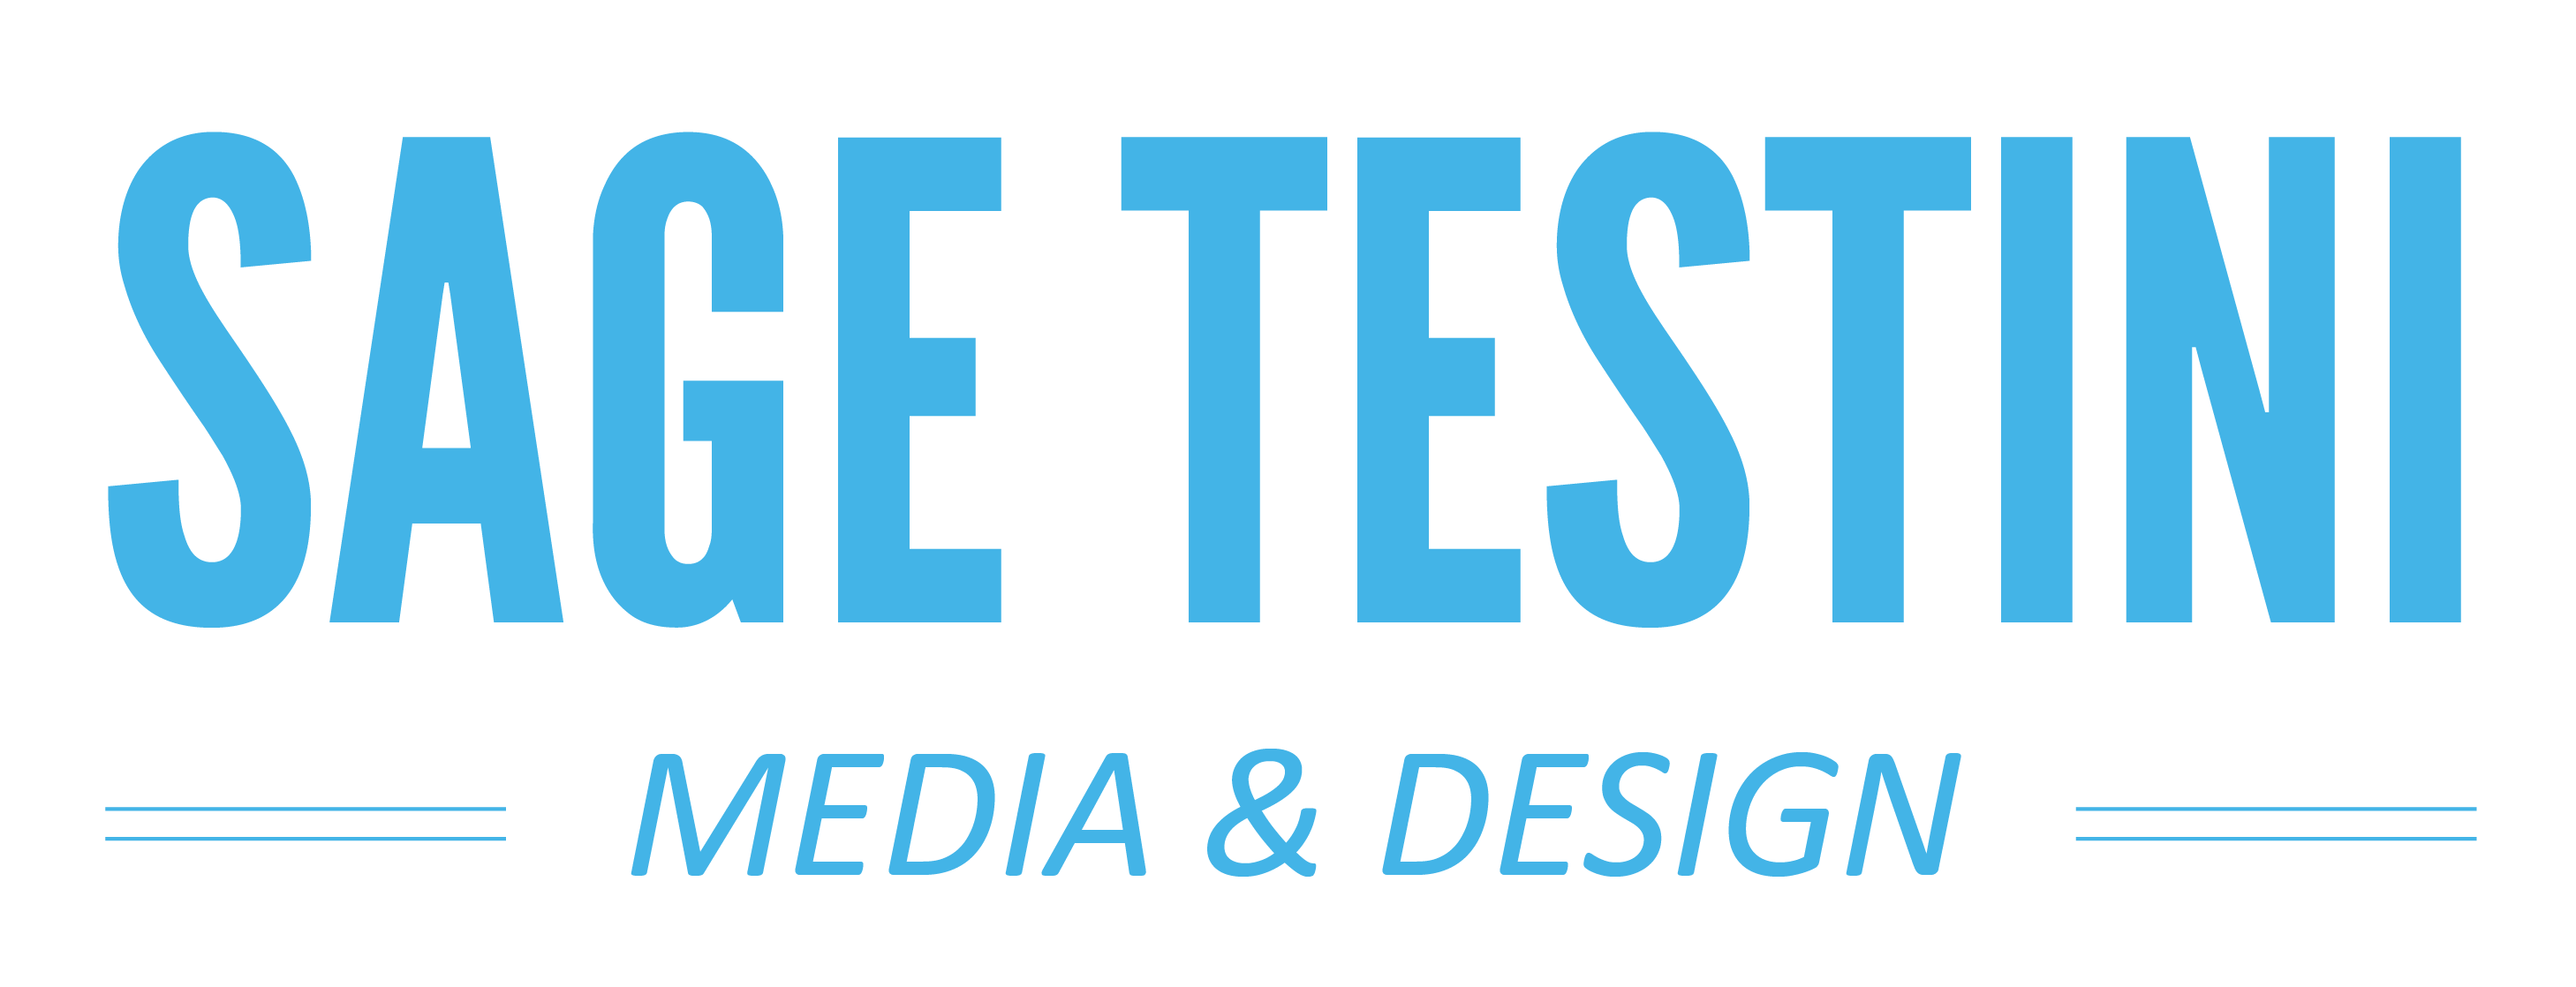 Digital Media and Design Specialist Vancouver - Sage Testini. Providing services in Front-End Web Design, Graphic Design, and Video Production.